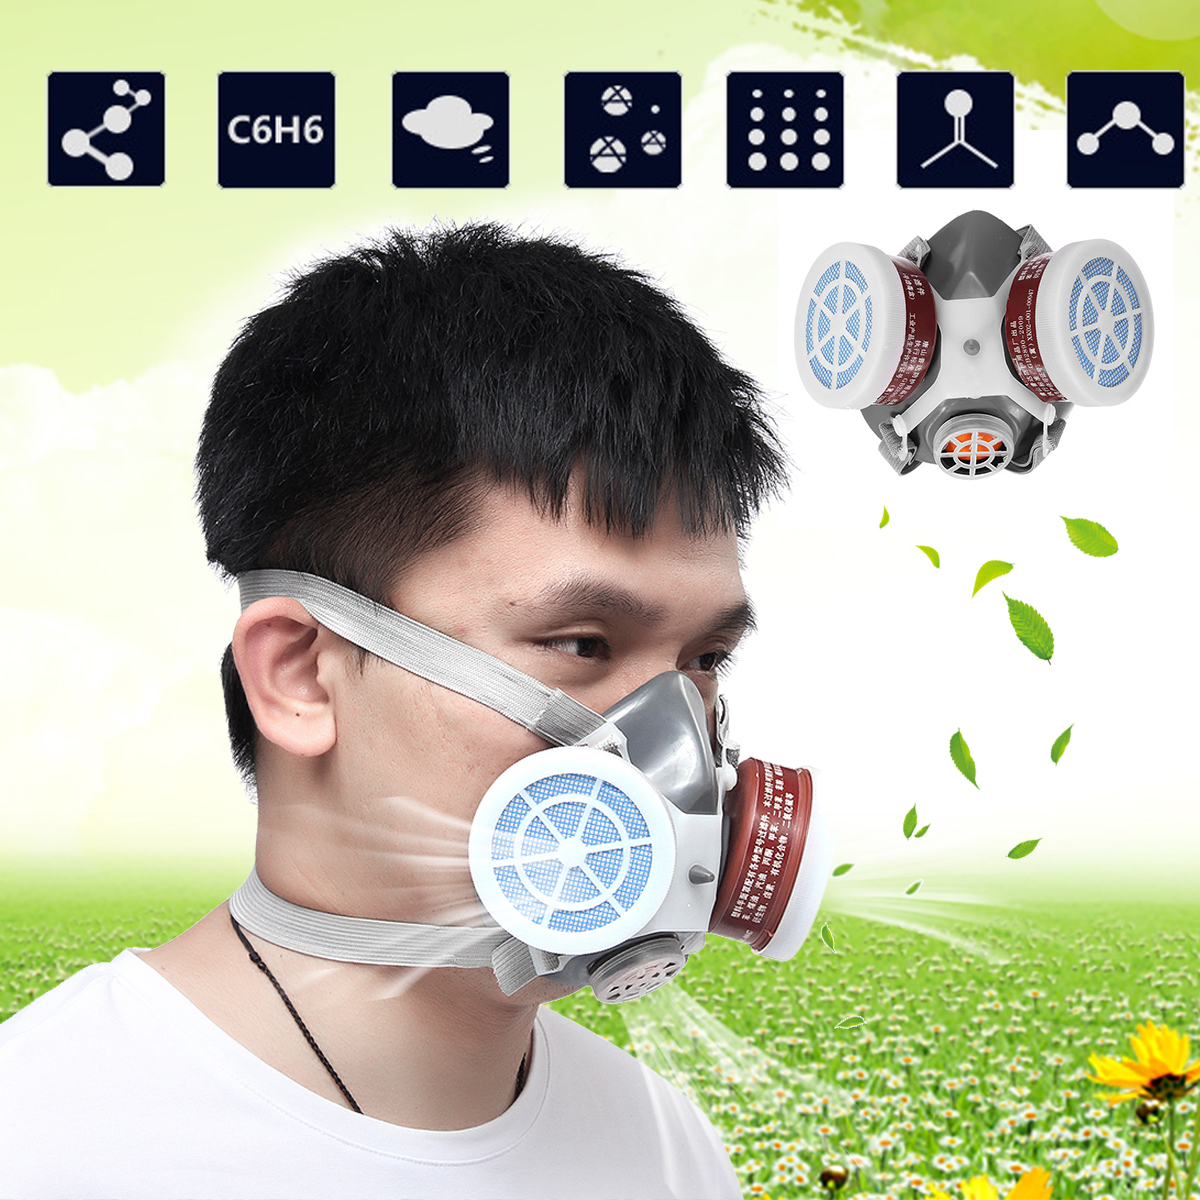 Gas Mask Spray Paint Chemical Double Protection Safety Mask Respirator Decoration Polishing Anti-paint Dustproof Mask Filter large 42x80cm simulation dove model toy plastic foam